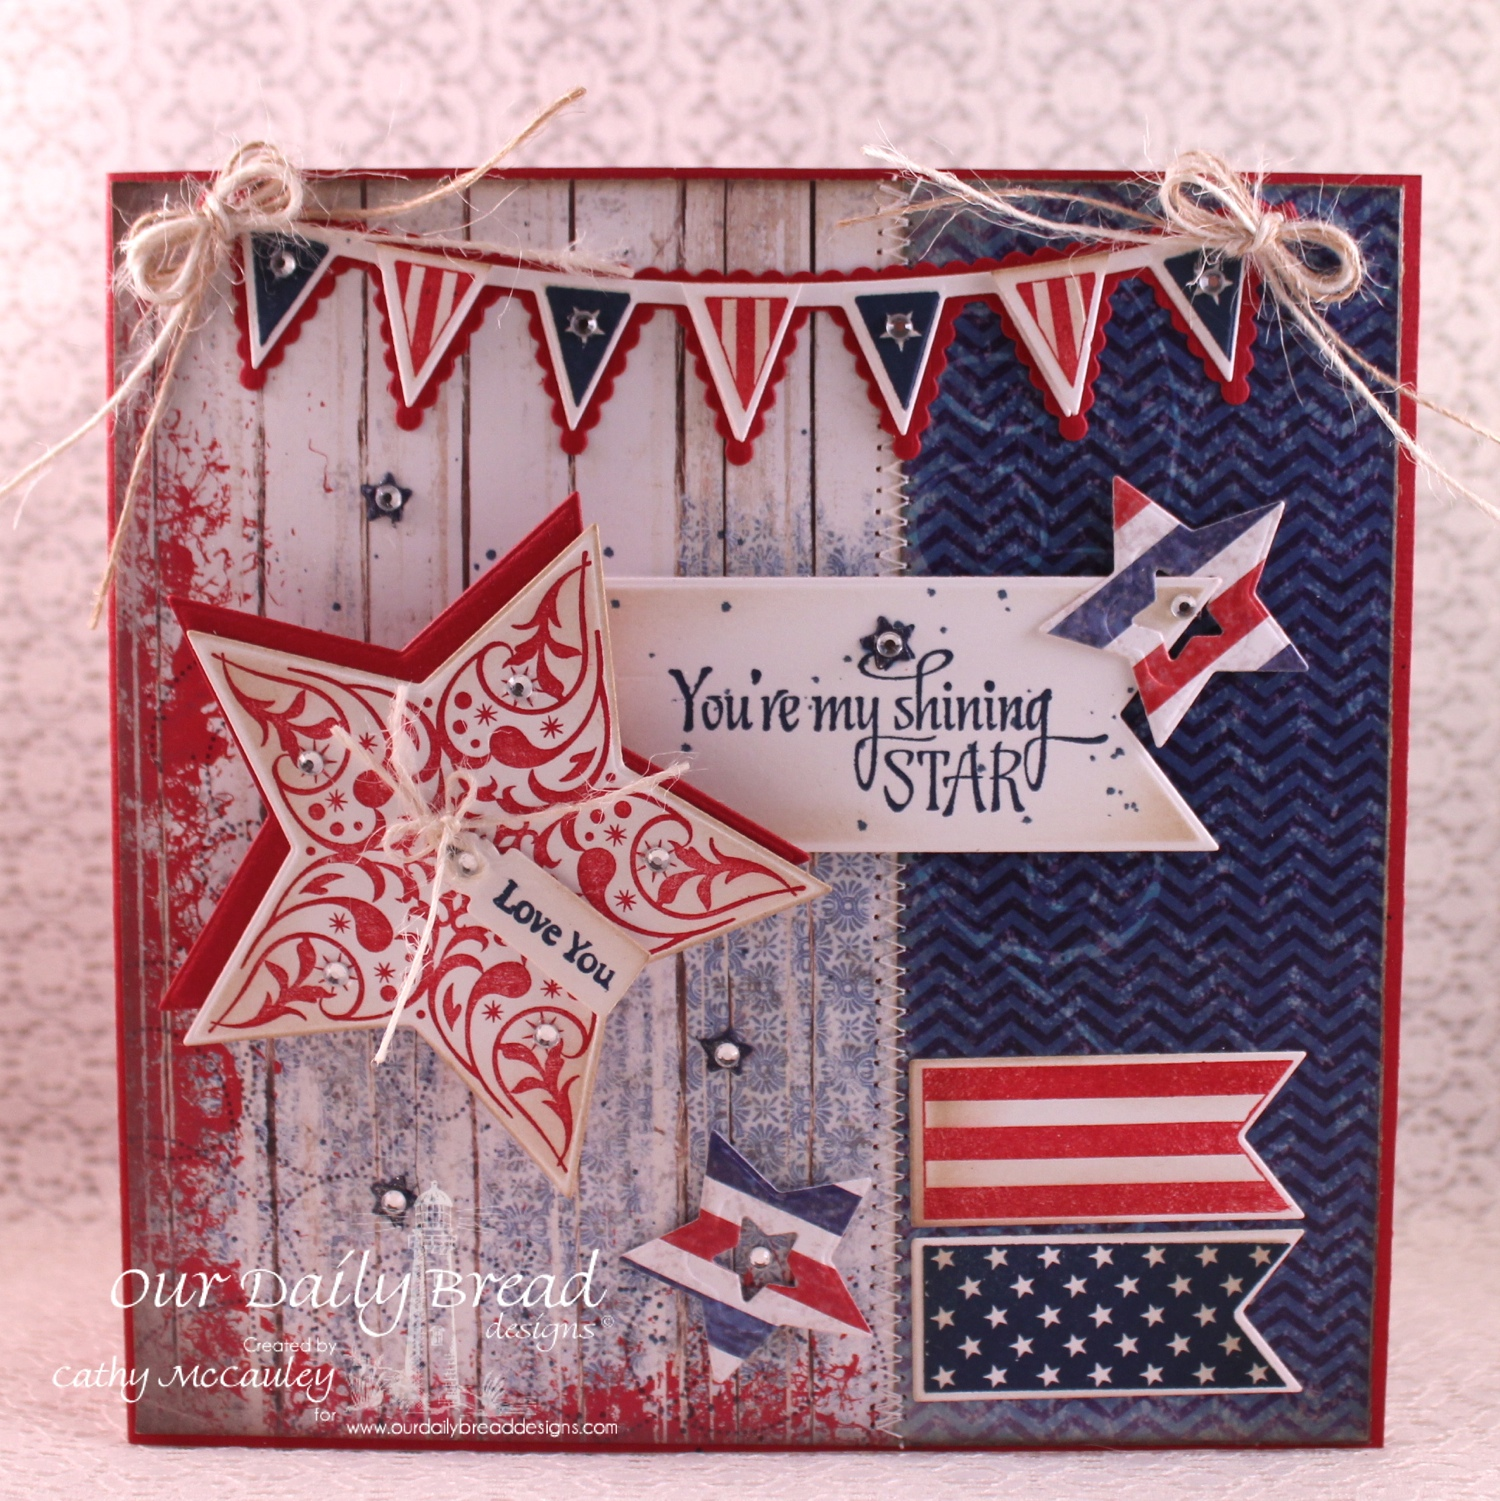 Stamps - Our Daily Bread Designs Shine On, Patriotic Pennants Mini Tag Sentiments, ODBD Patriotic Paper Collection, ODBD Custom Shining Stars Dies, ODBD Custom Pennants Die, ODBD Custom Pennant Row Die, ODBD Custom Mini Tags Dies